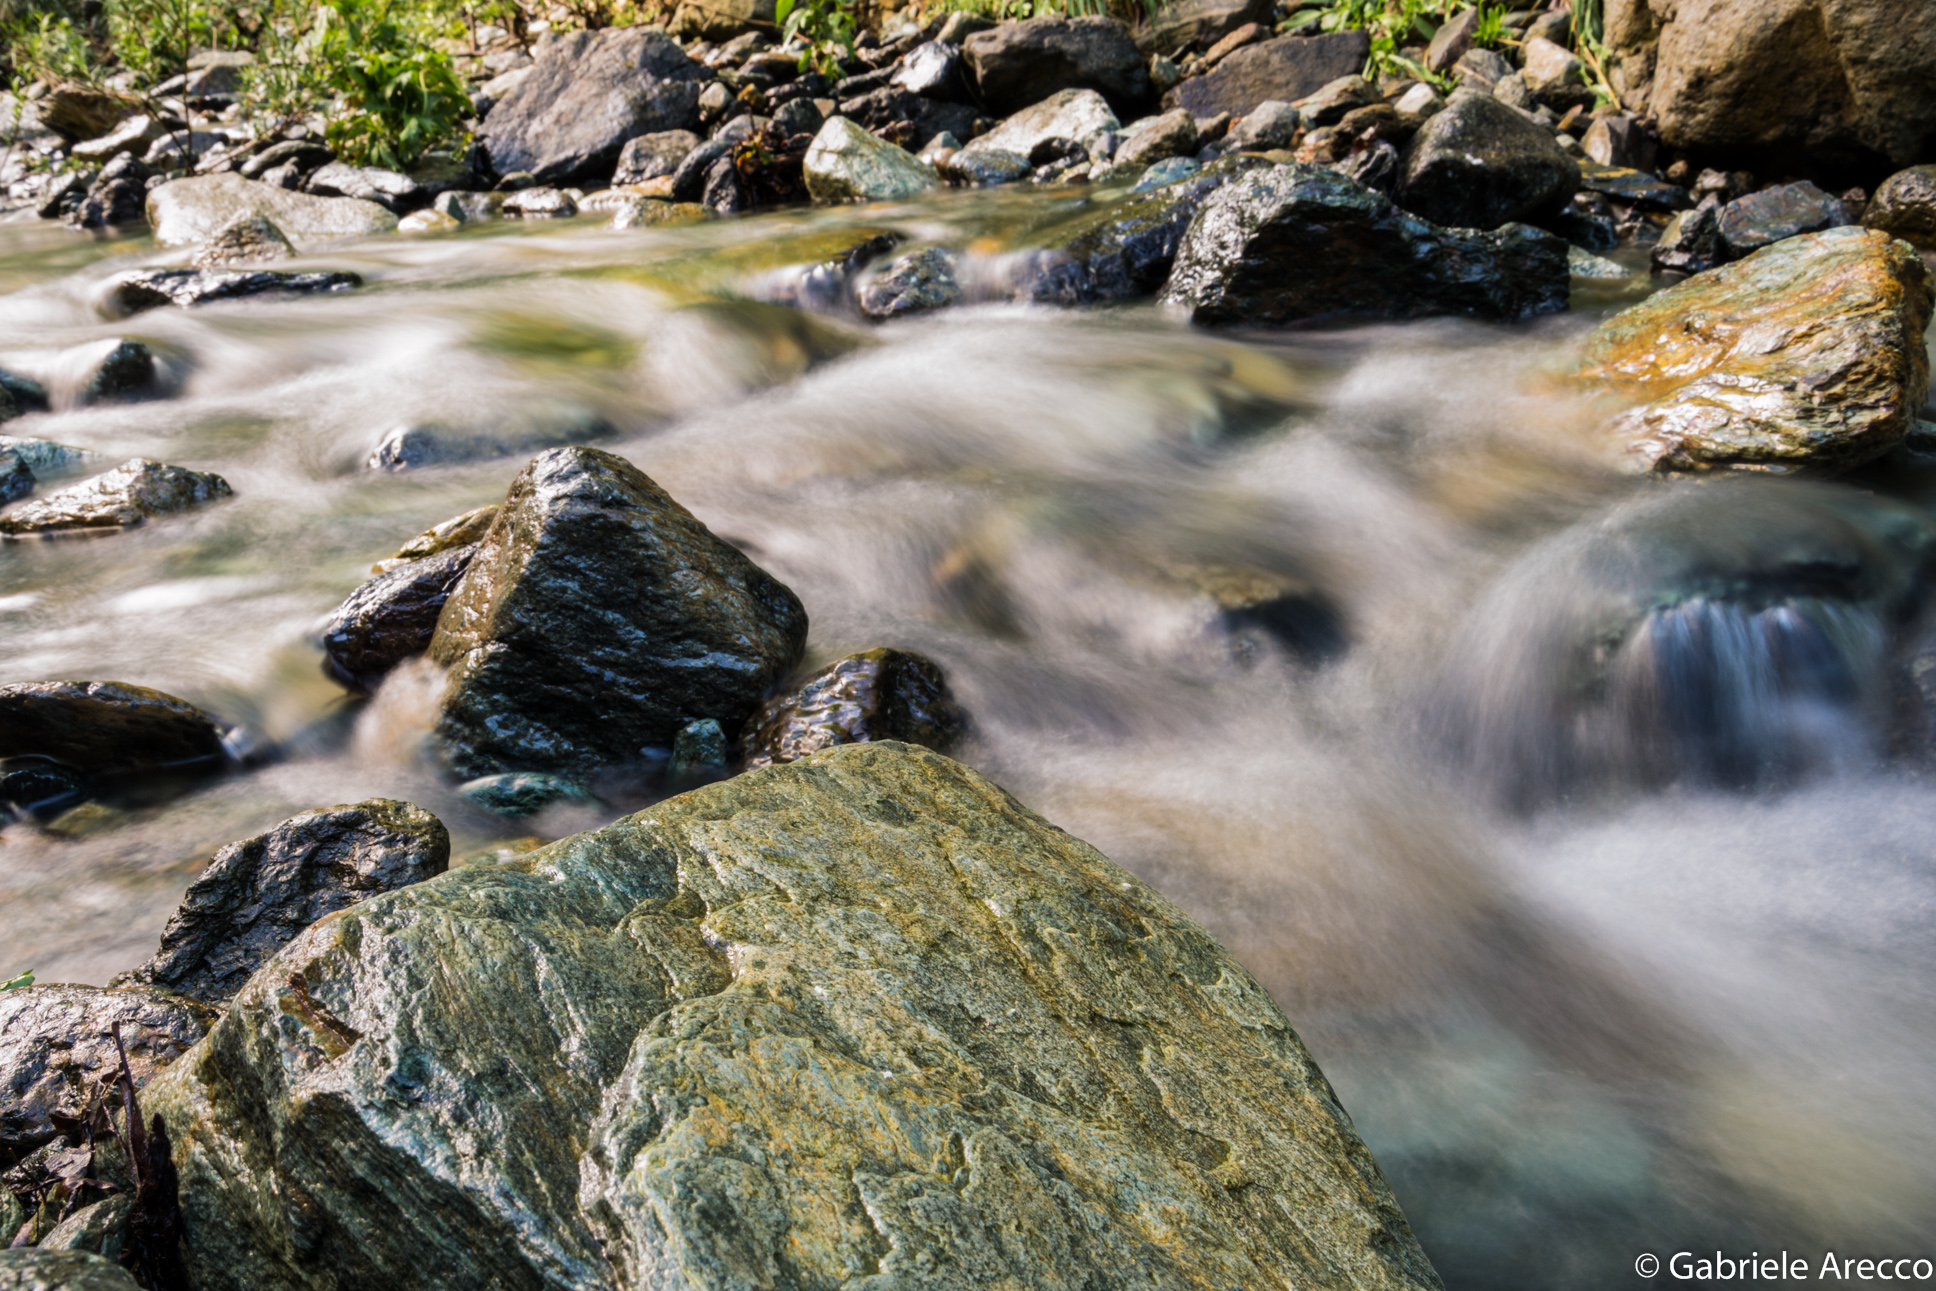 The stream between the rocks...